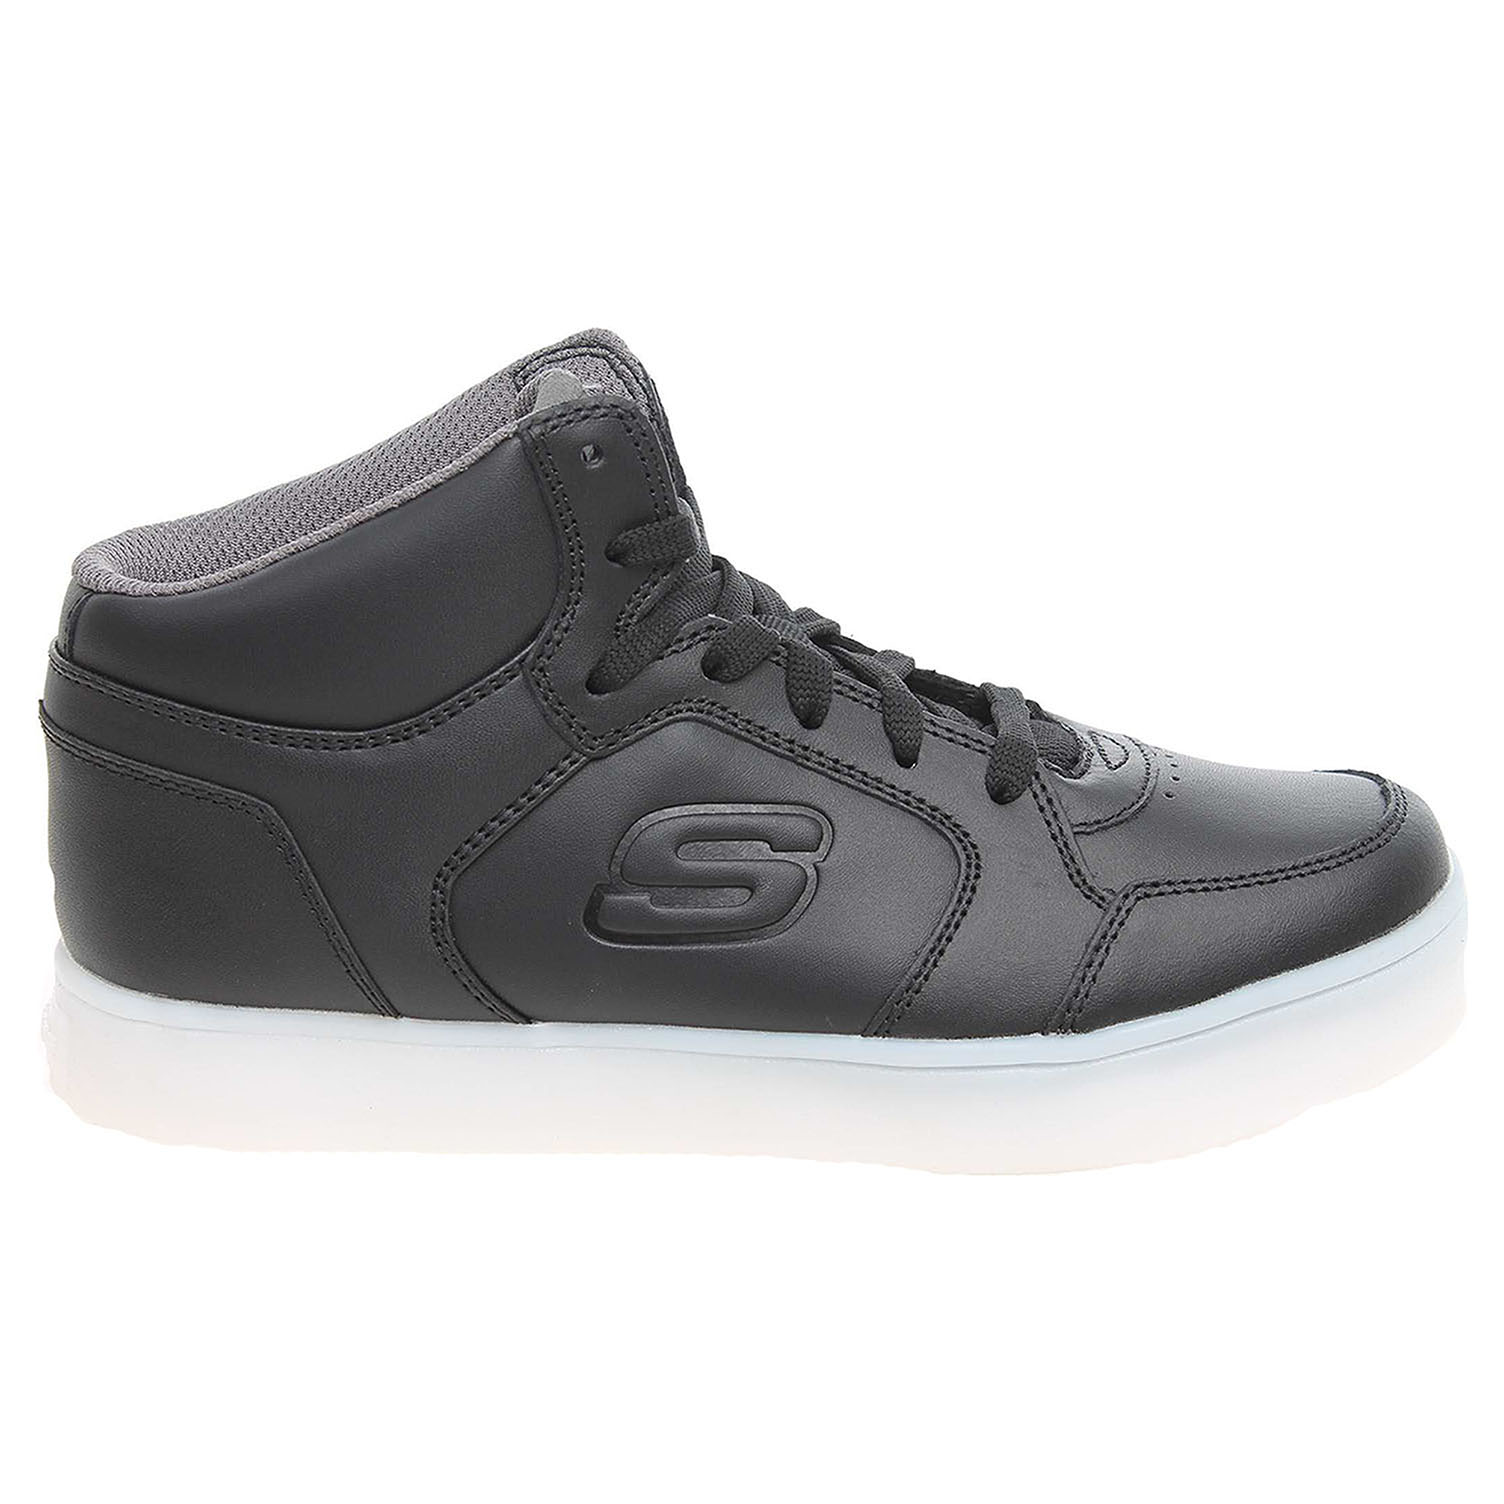 Skechers Energy Lights black